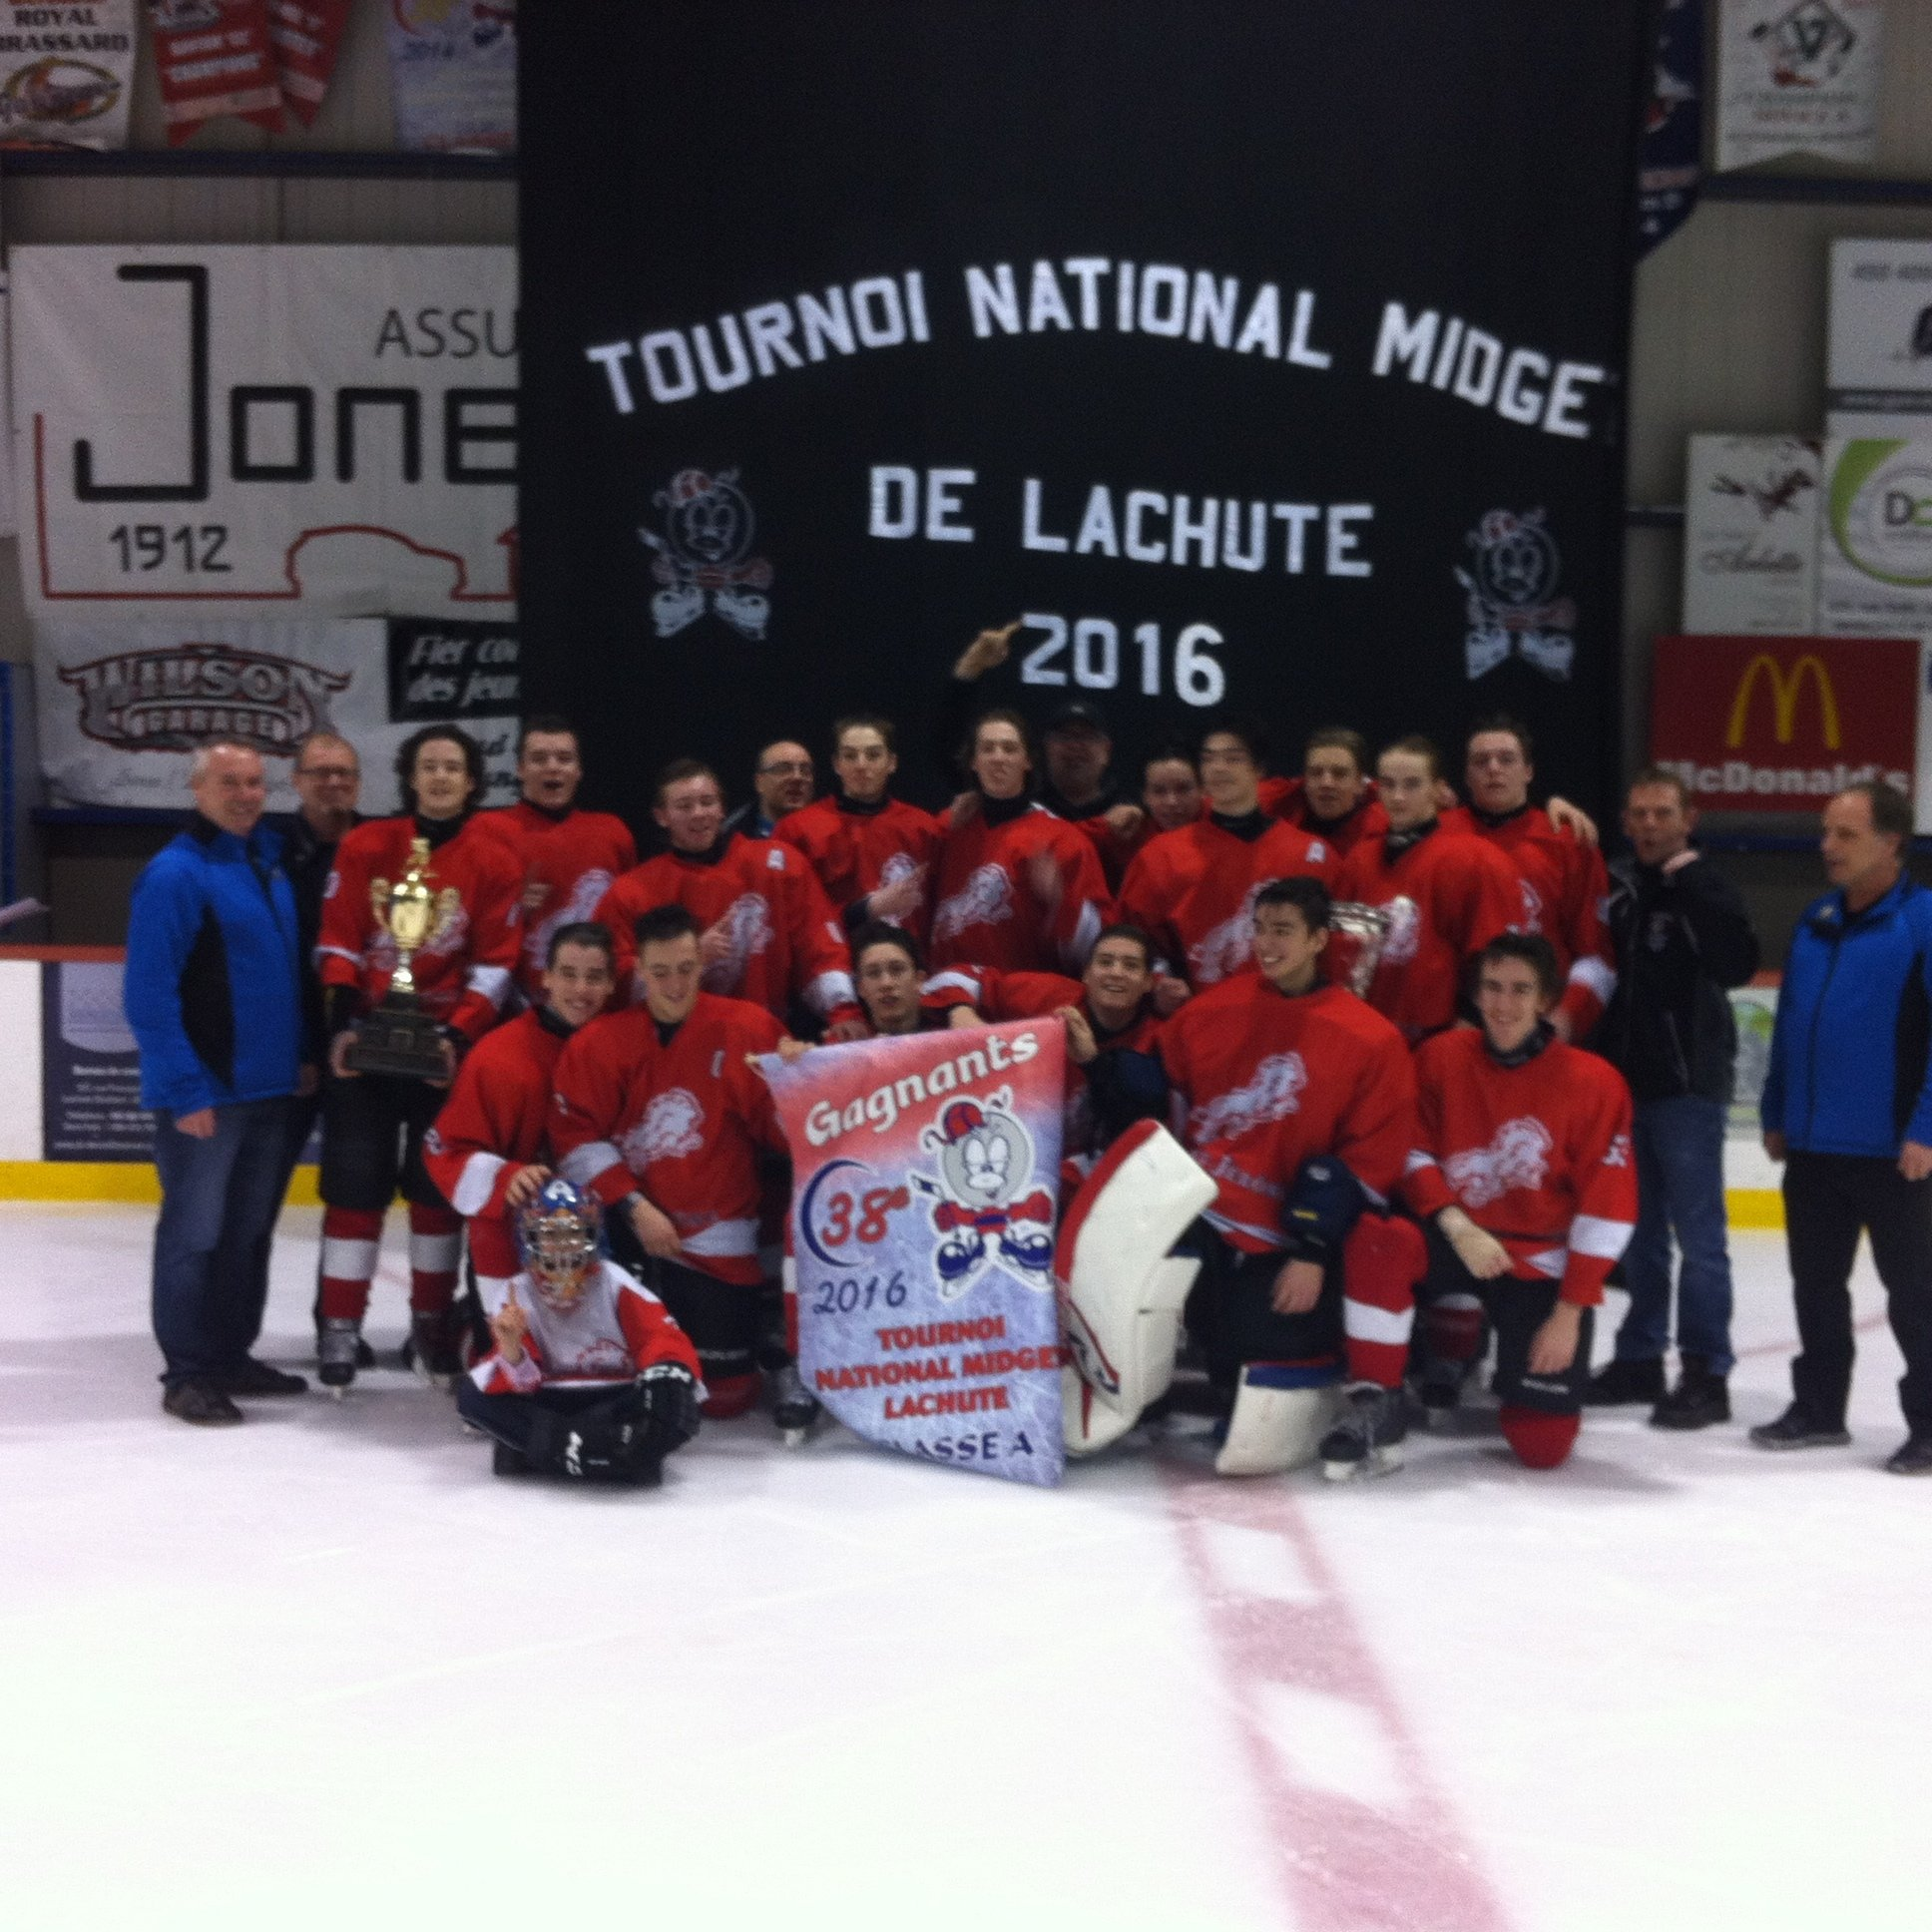 Tournoi midget de lachute Seldom.. possible